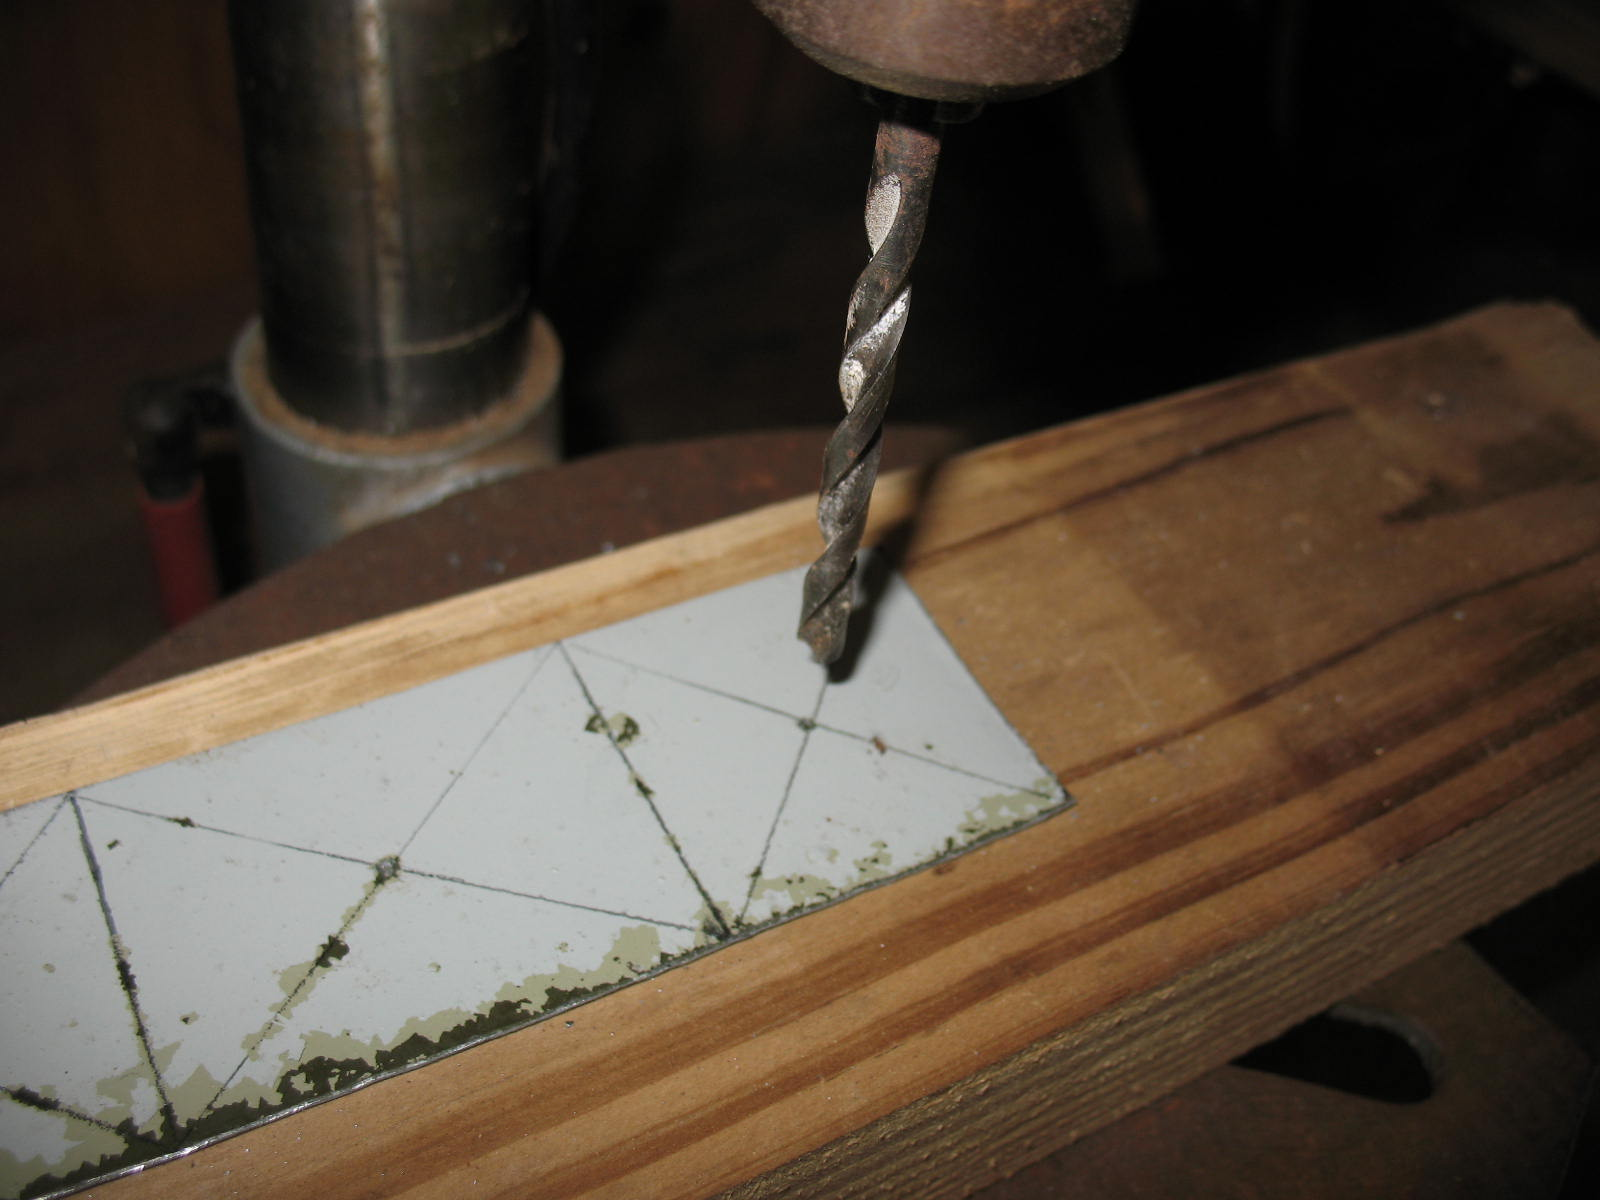 how to make a bowstring in the wilderness